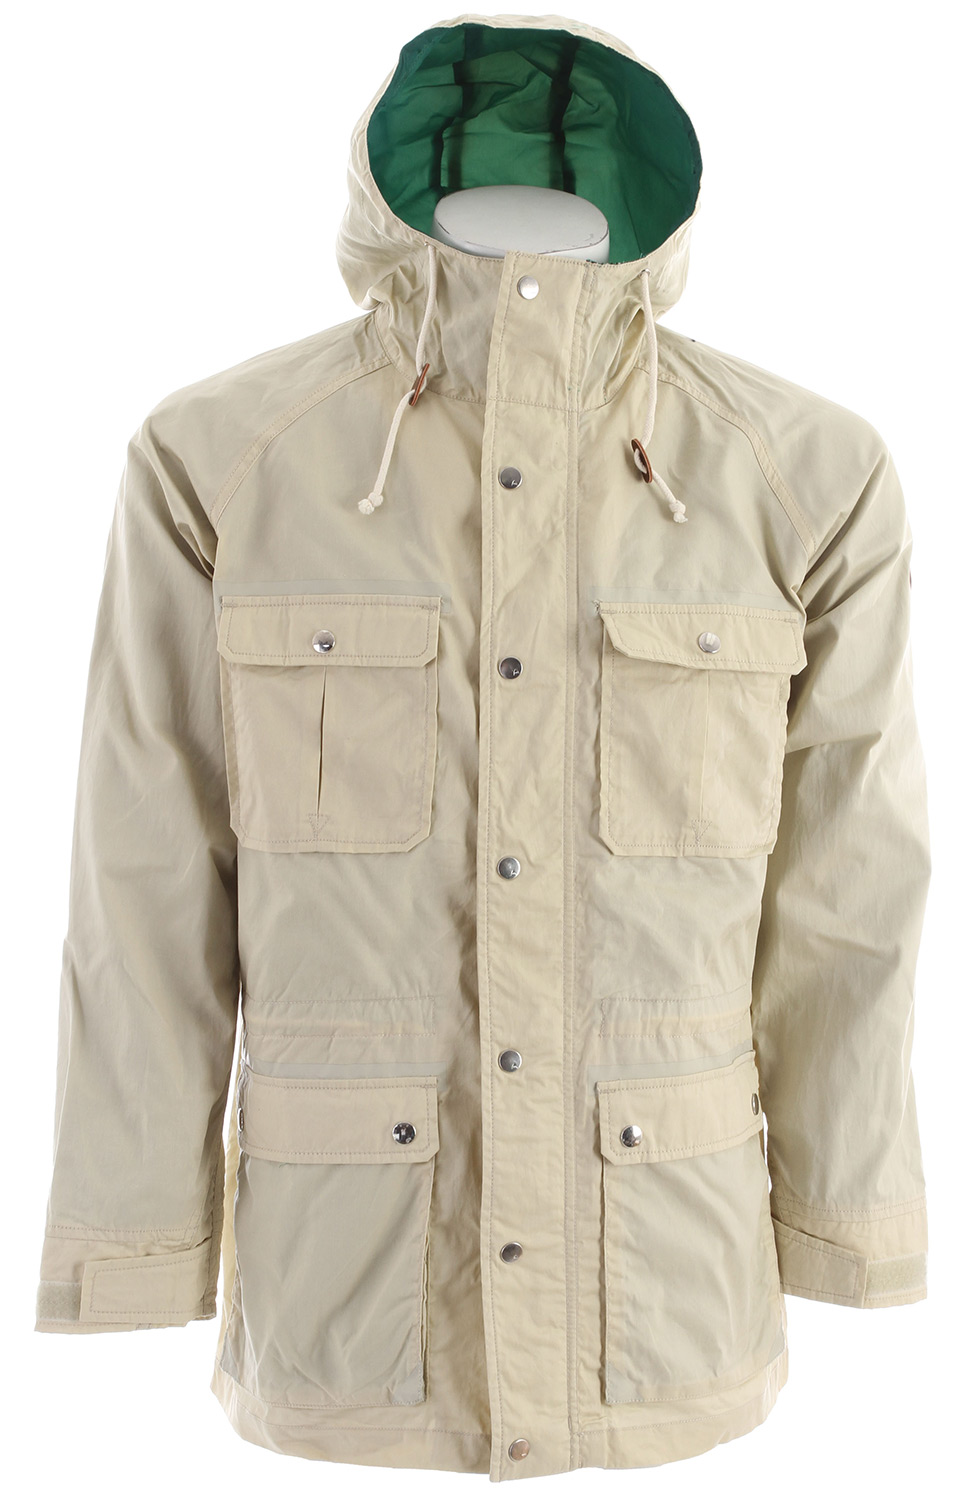 Snowboard Military-inspired waxed cotton parka; without the yelling or the pushups.It was later adopted by the British military for elemental protection, then by American sportsmen for its classic weatherproof character. That is some fabric history, but what makes it such a classic choice for the Men's Burton Greenville Jacket is that combination of utilitarian function and timeless style. The street fit, fulltime Contour hood and breathable taffeta lining add another layer of function to this classic foul weather performer.* Taffeta Half Lining [Upper Body, Sleeves and Hood] * Fulltime Contour Hood * Adjustable Cuffs * Waxed Cotton Fabric * Patch-On Handwarmer Pockets with Snap Closure * Internal Chest Pocket * Internal Waist Cinch - $56.95